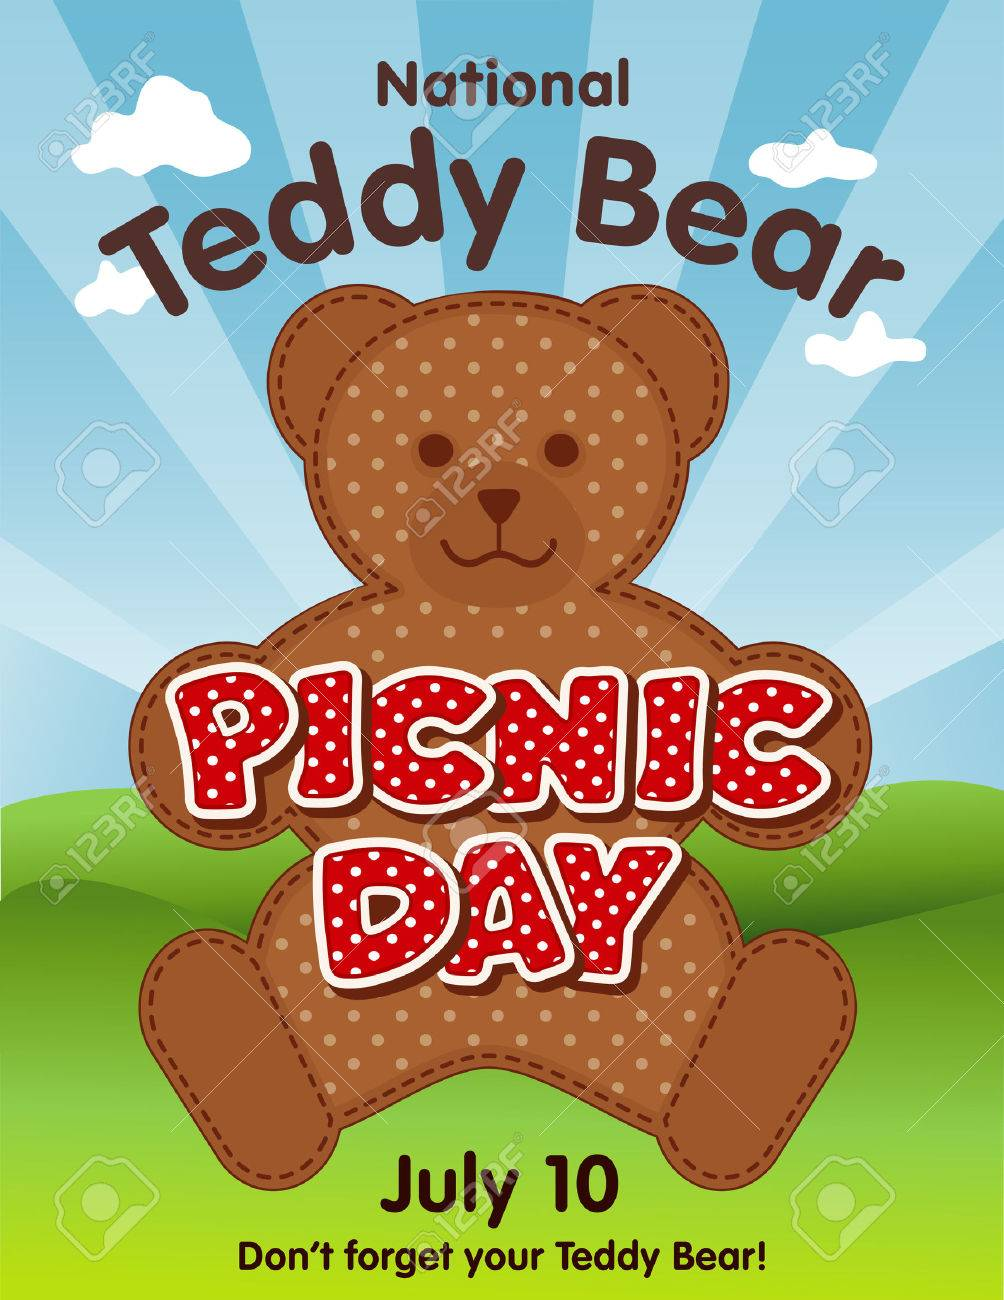 Teddy Bear Picnic Day Poster National Holiday In USA On July 10 When Kids